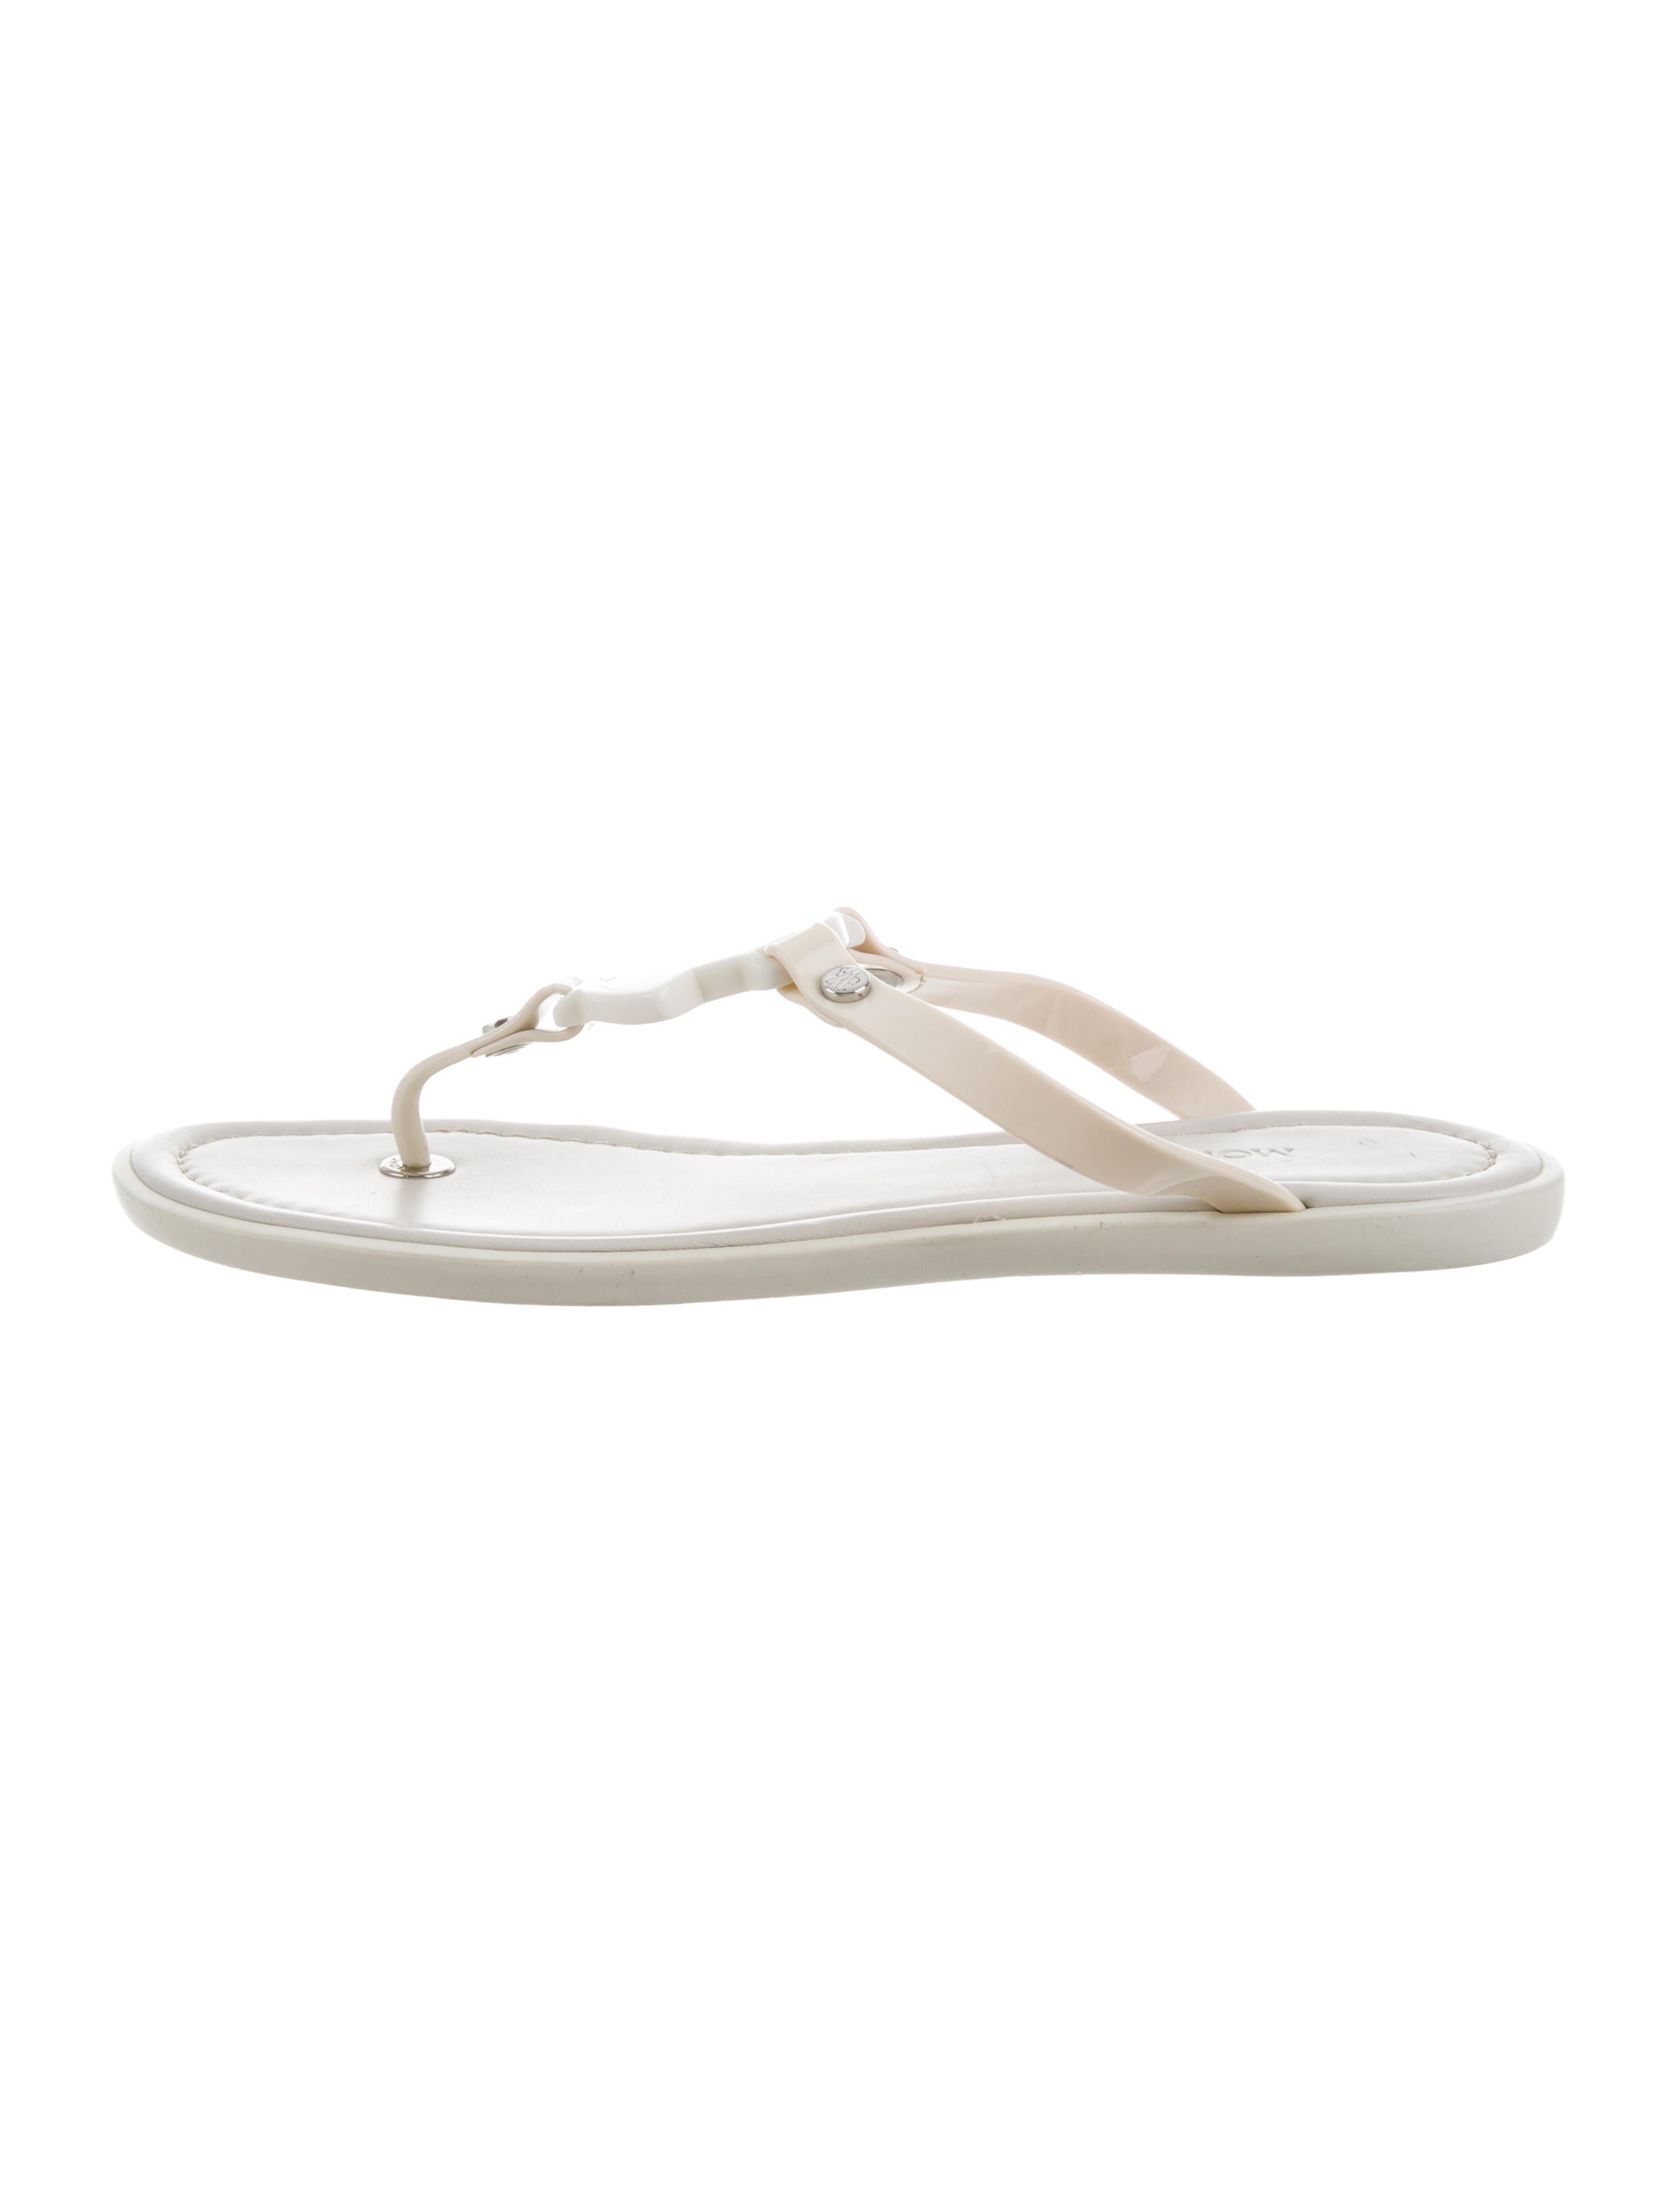 Moncler Logo Thong Sandals discount purchase m6FmTw